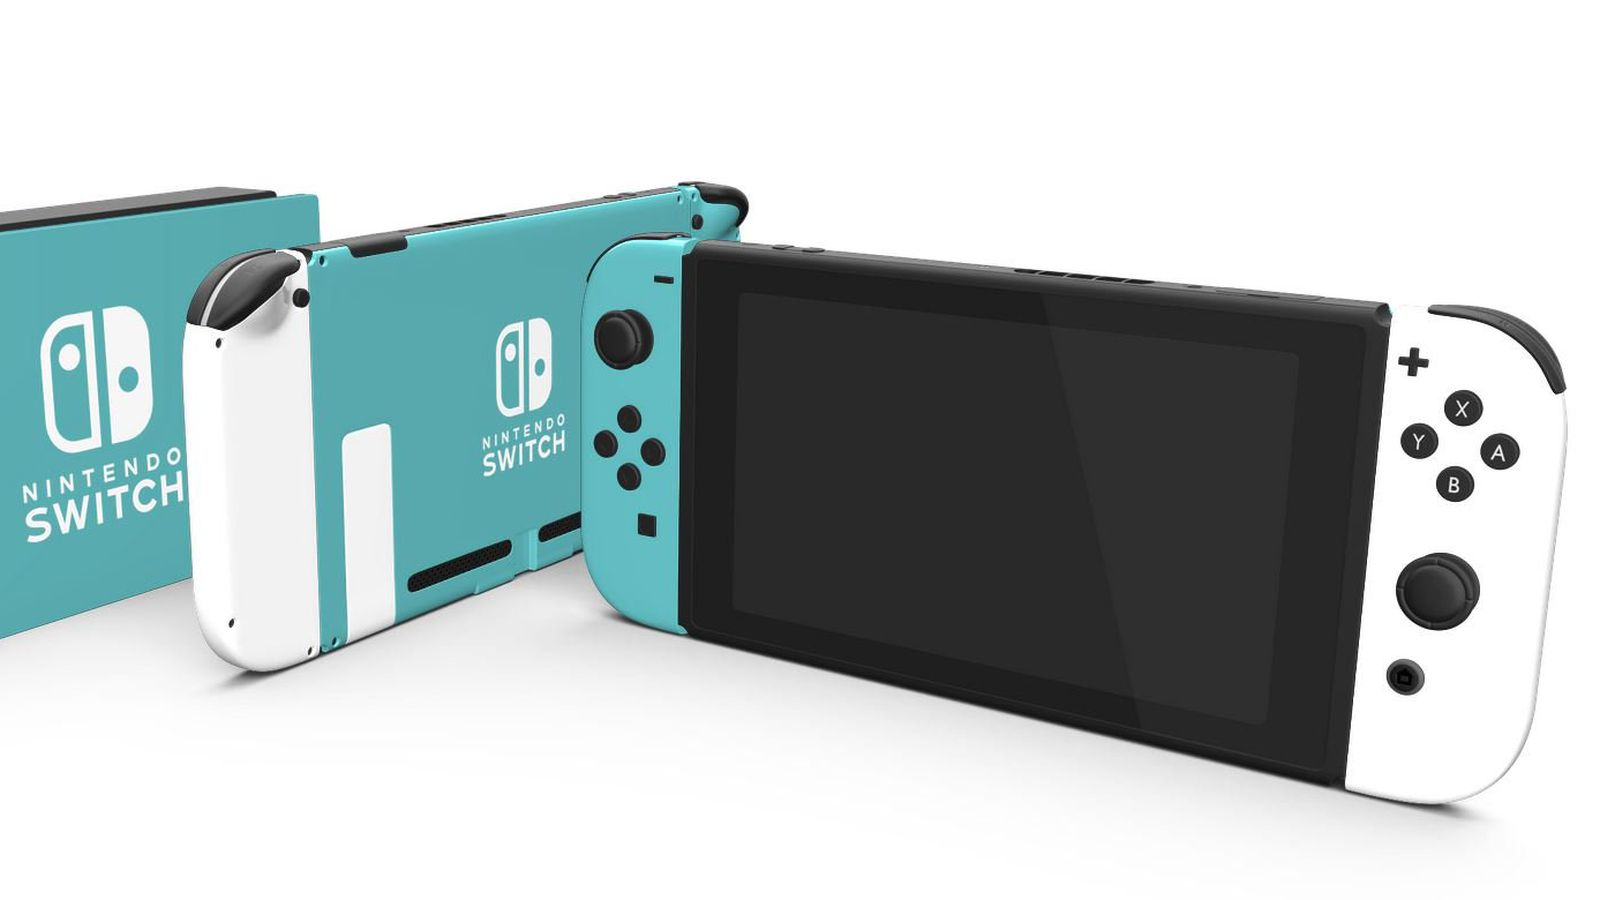 You Can Buy A Colorful Customized Nintendo Switch For